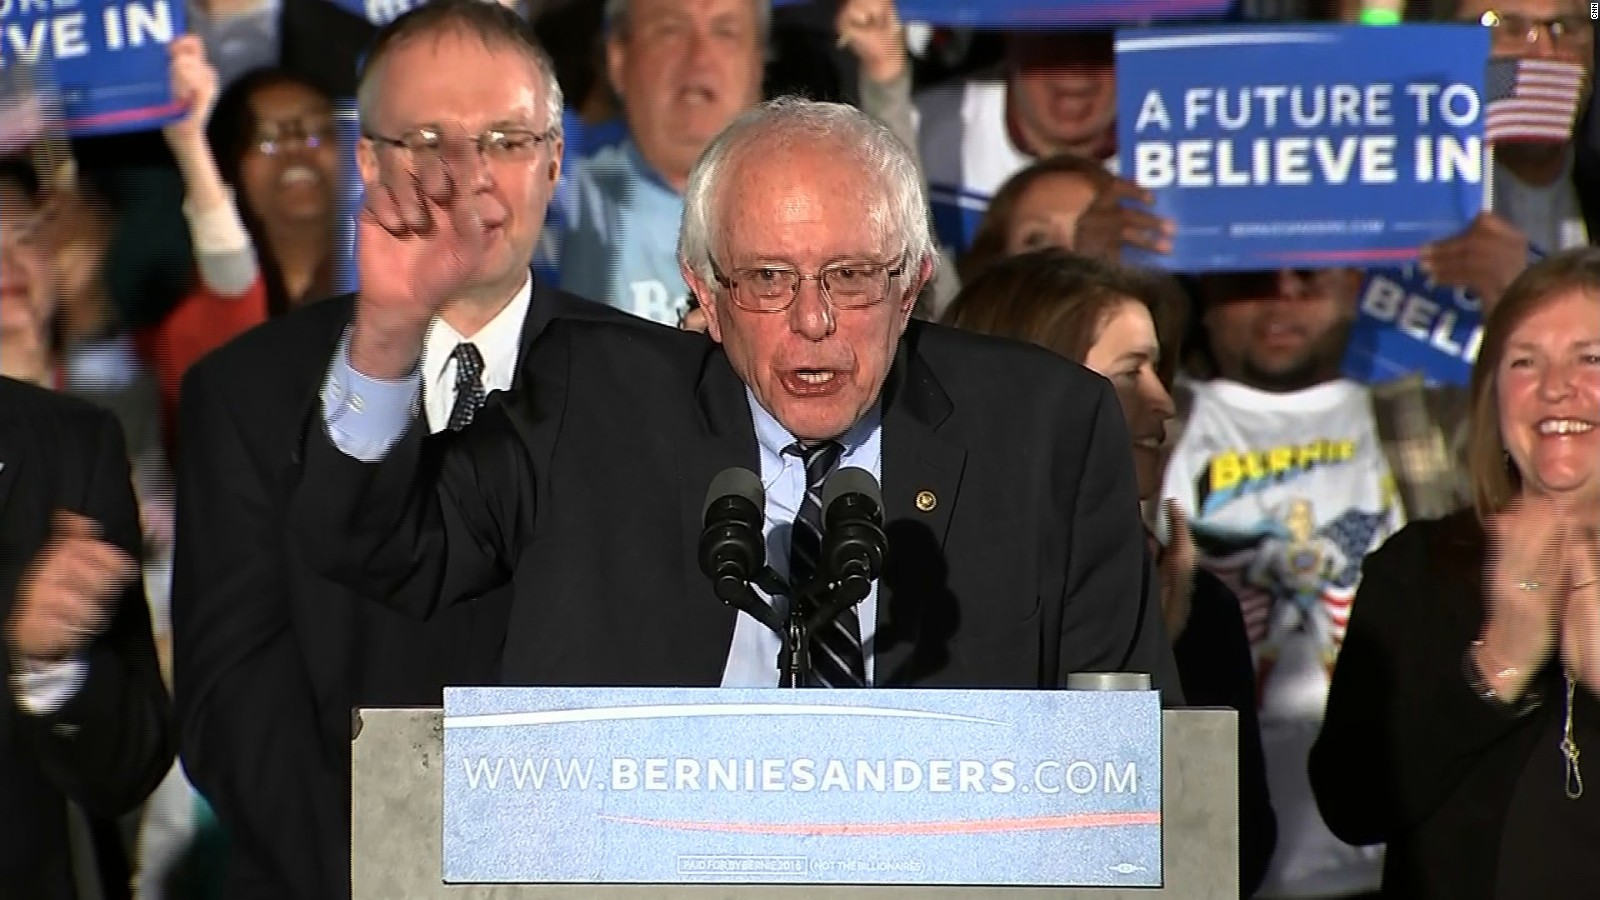 Bernie Sanders Speaking